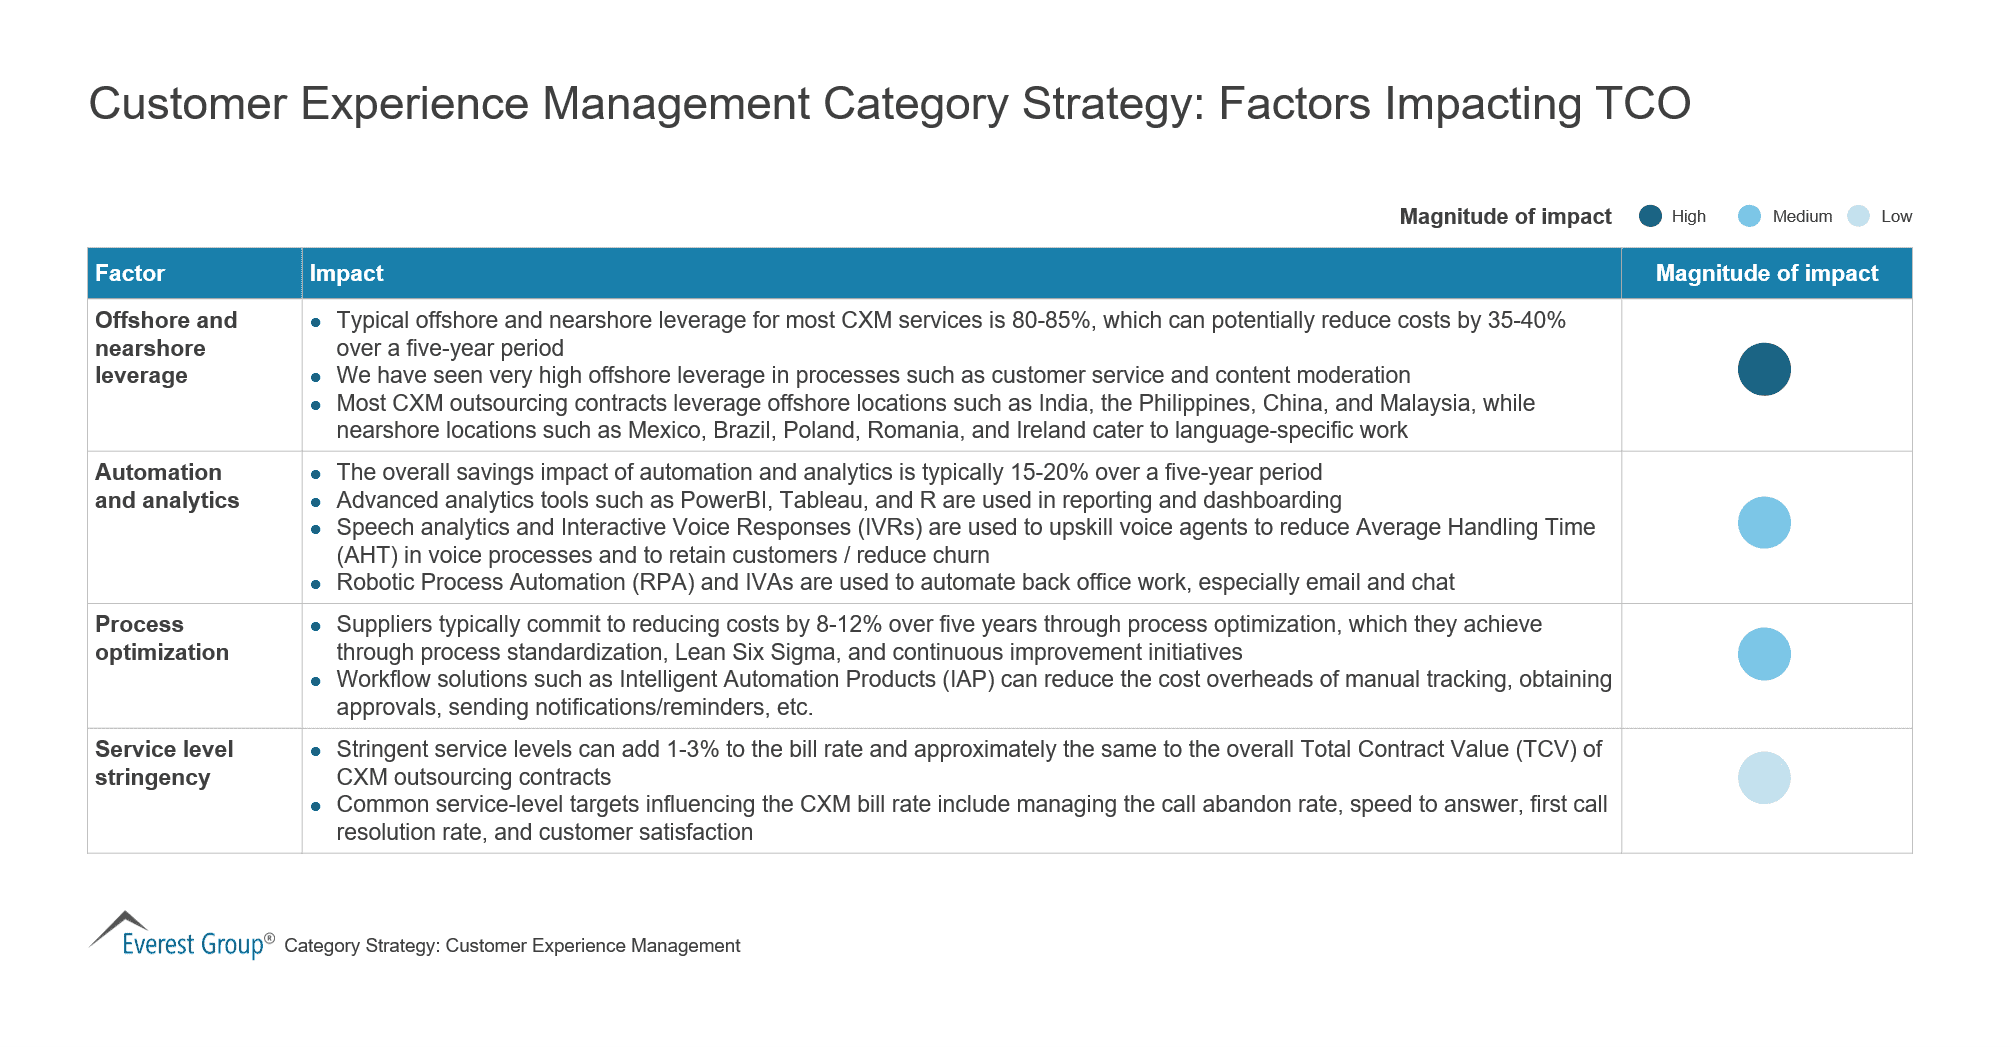 Customer Experience Management Category Strategy-Factors Impacting TCO